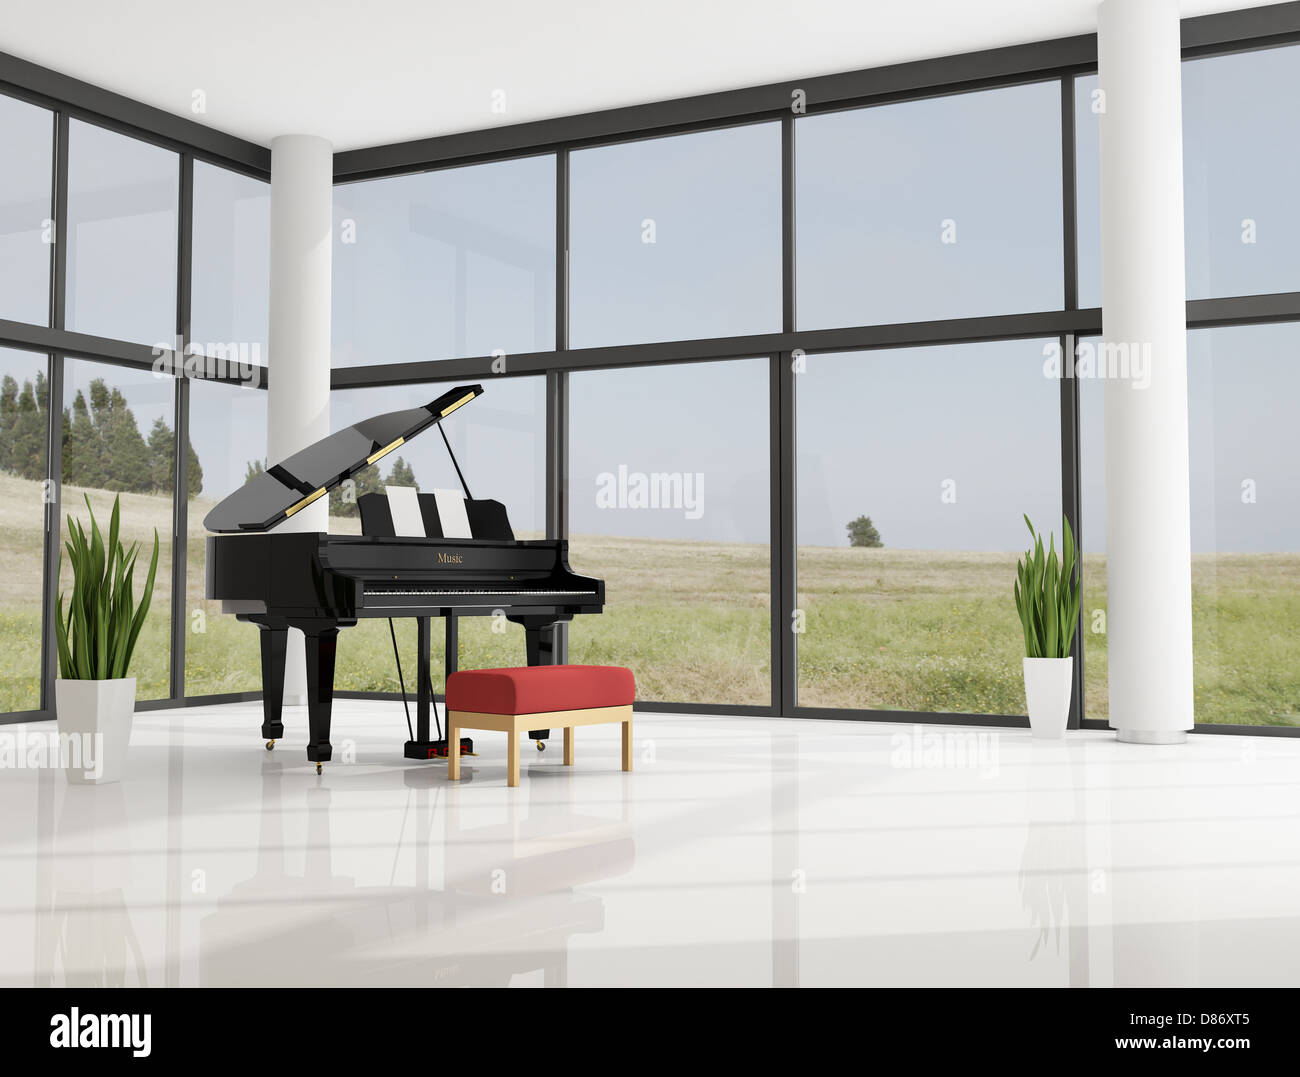 Grand Piano In Living Room Stock Photos & Grand Piano In Living Room ...